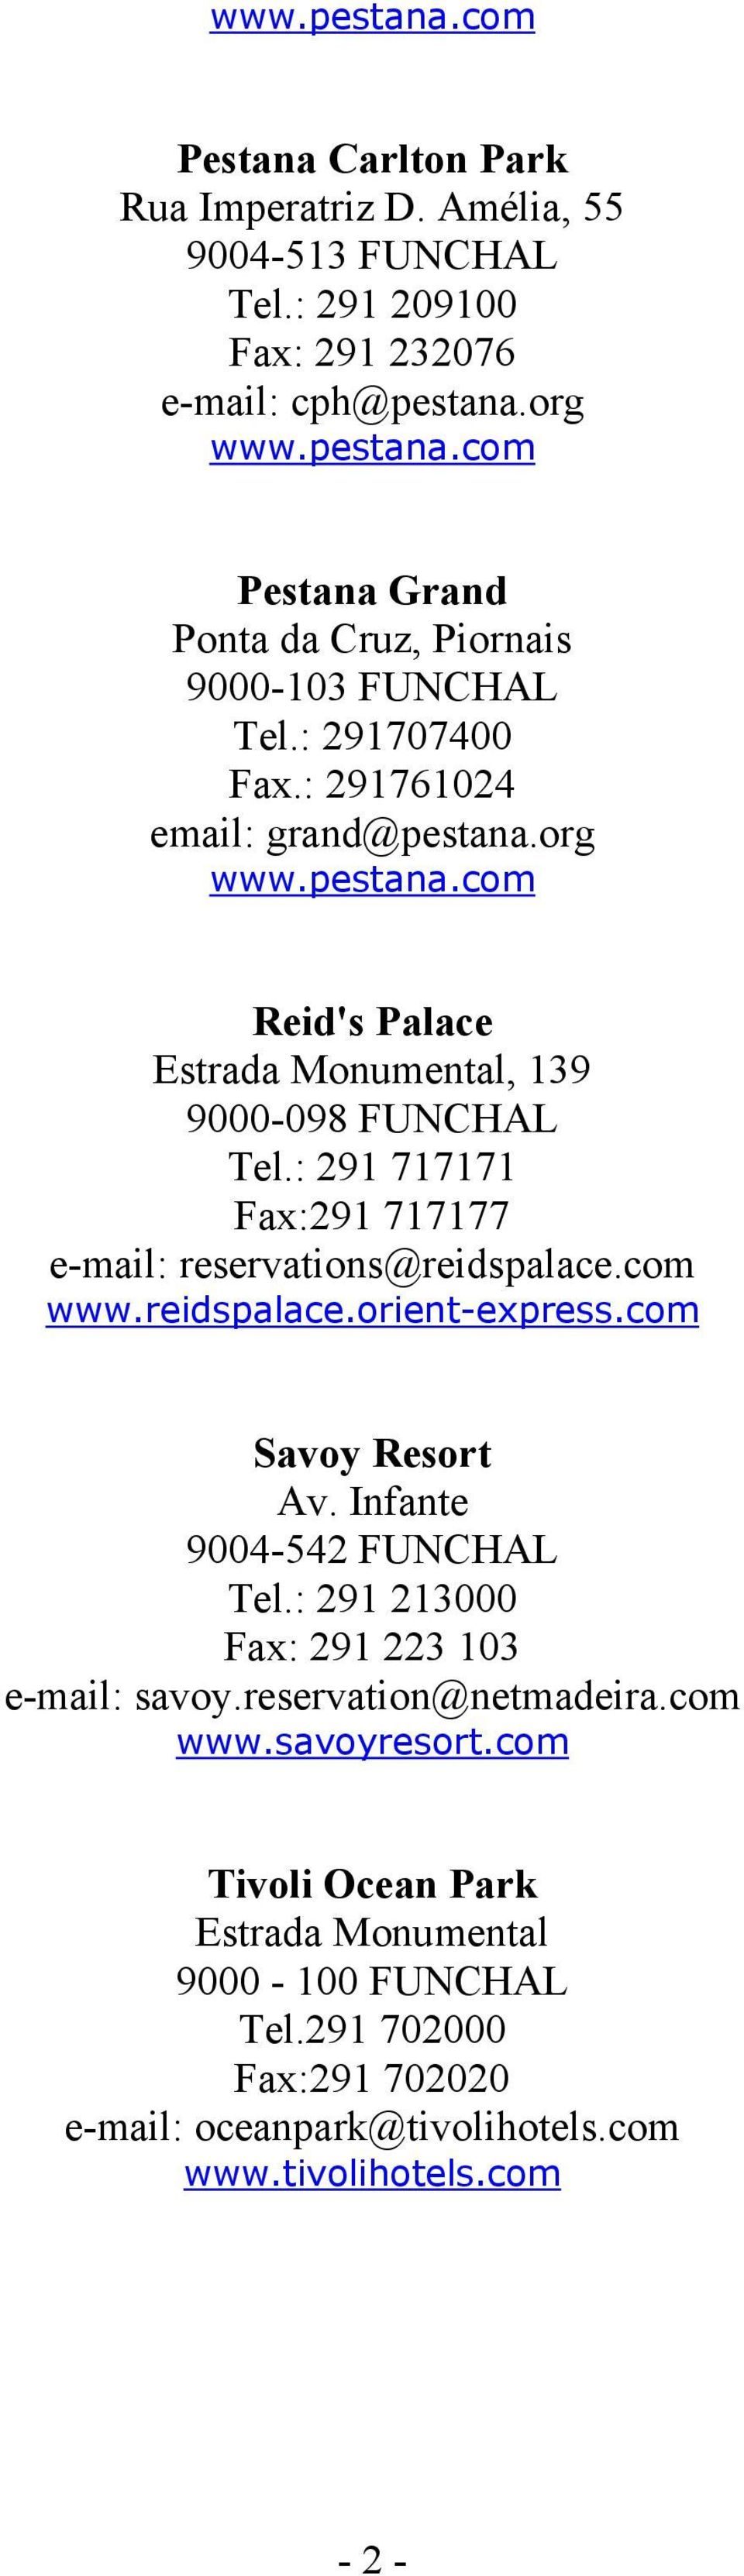 : 291 717171 Fax:291 717177 e-mail: reservations@reidspalace.com www.reidspalace.orient-express.com Savoy Resort Av. Infante 9004-542 FUNCHAL Tel.